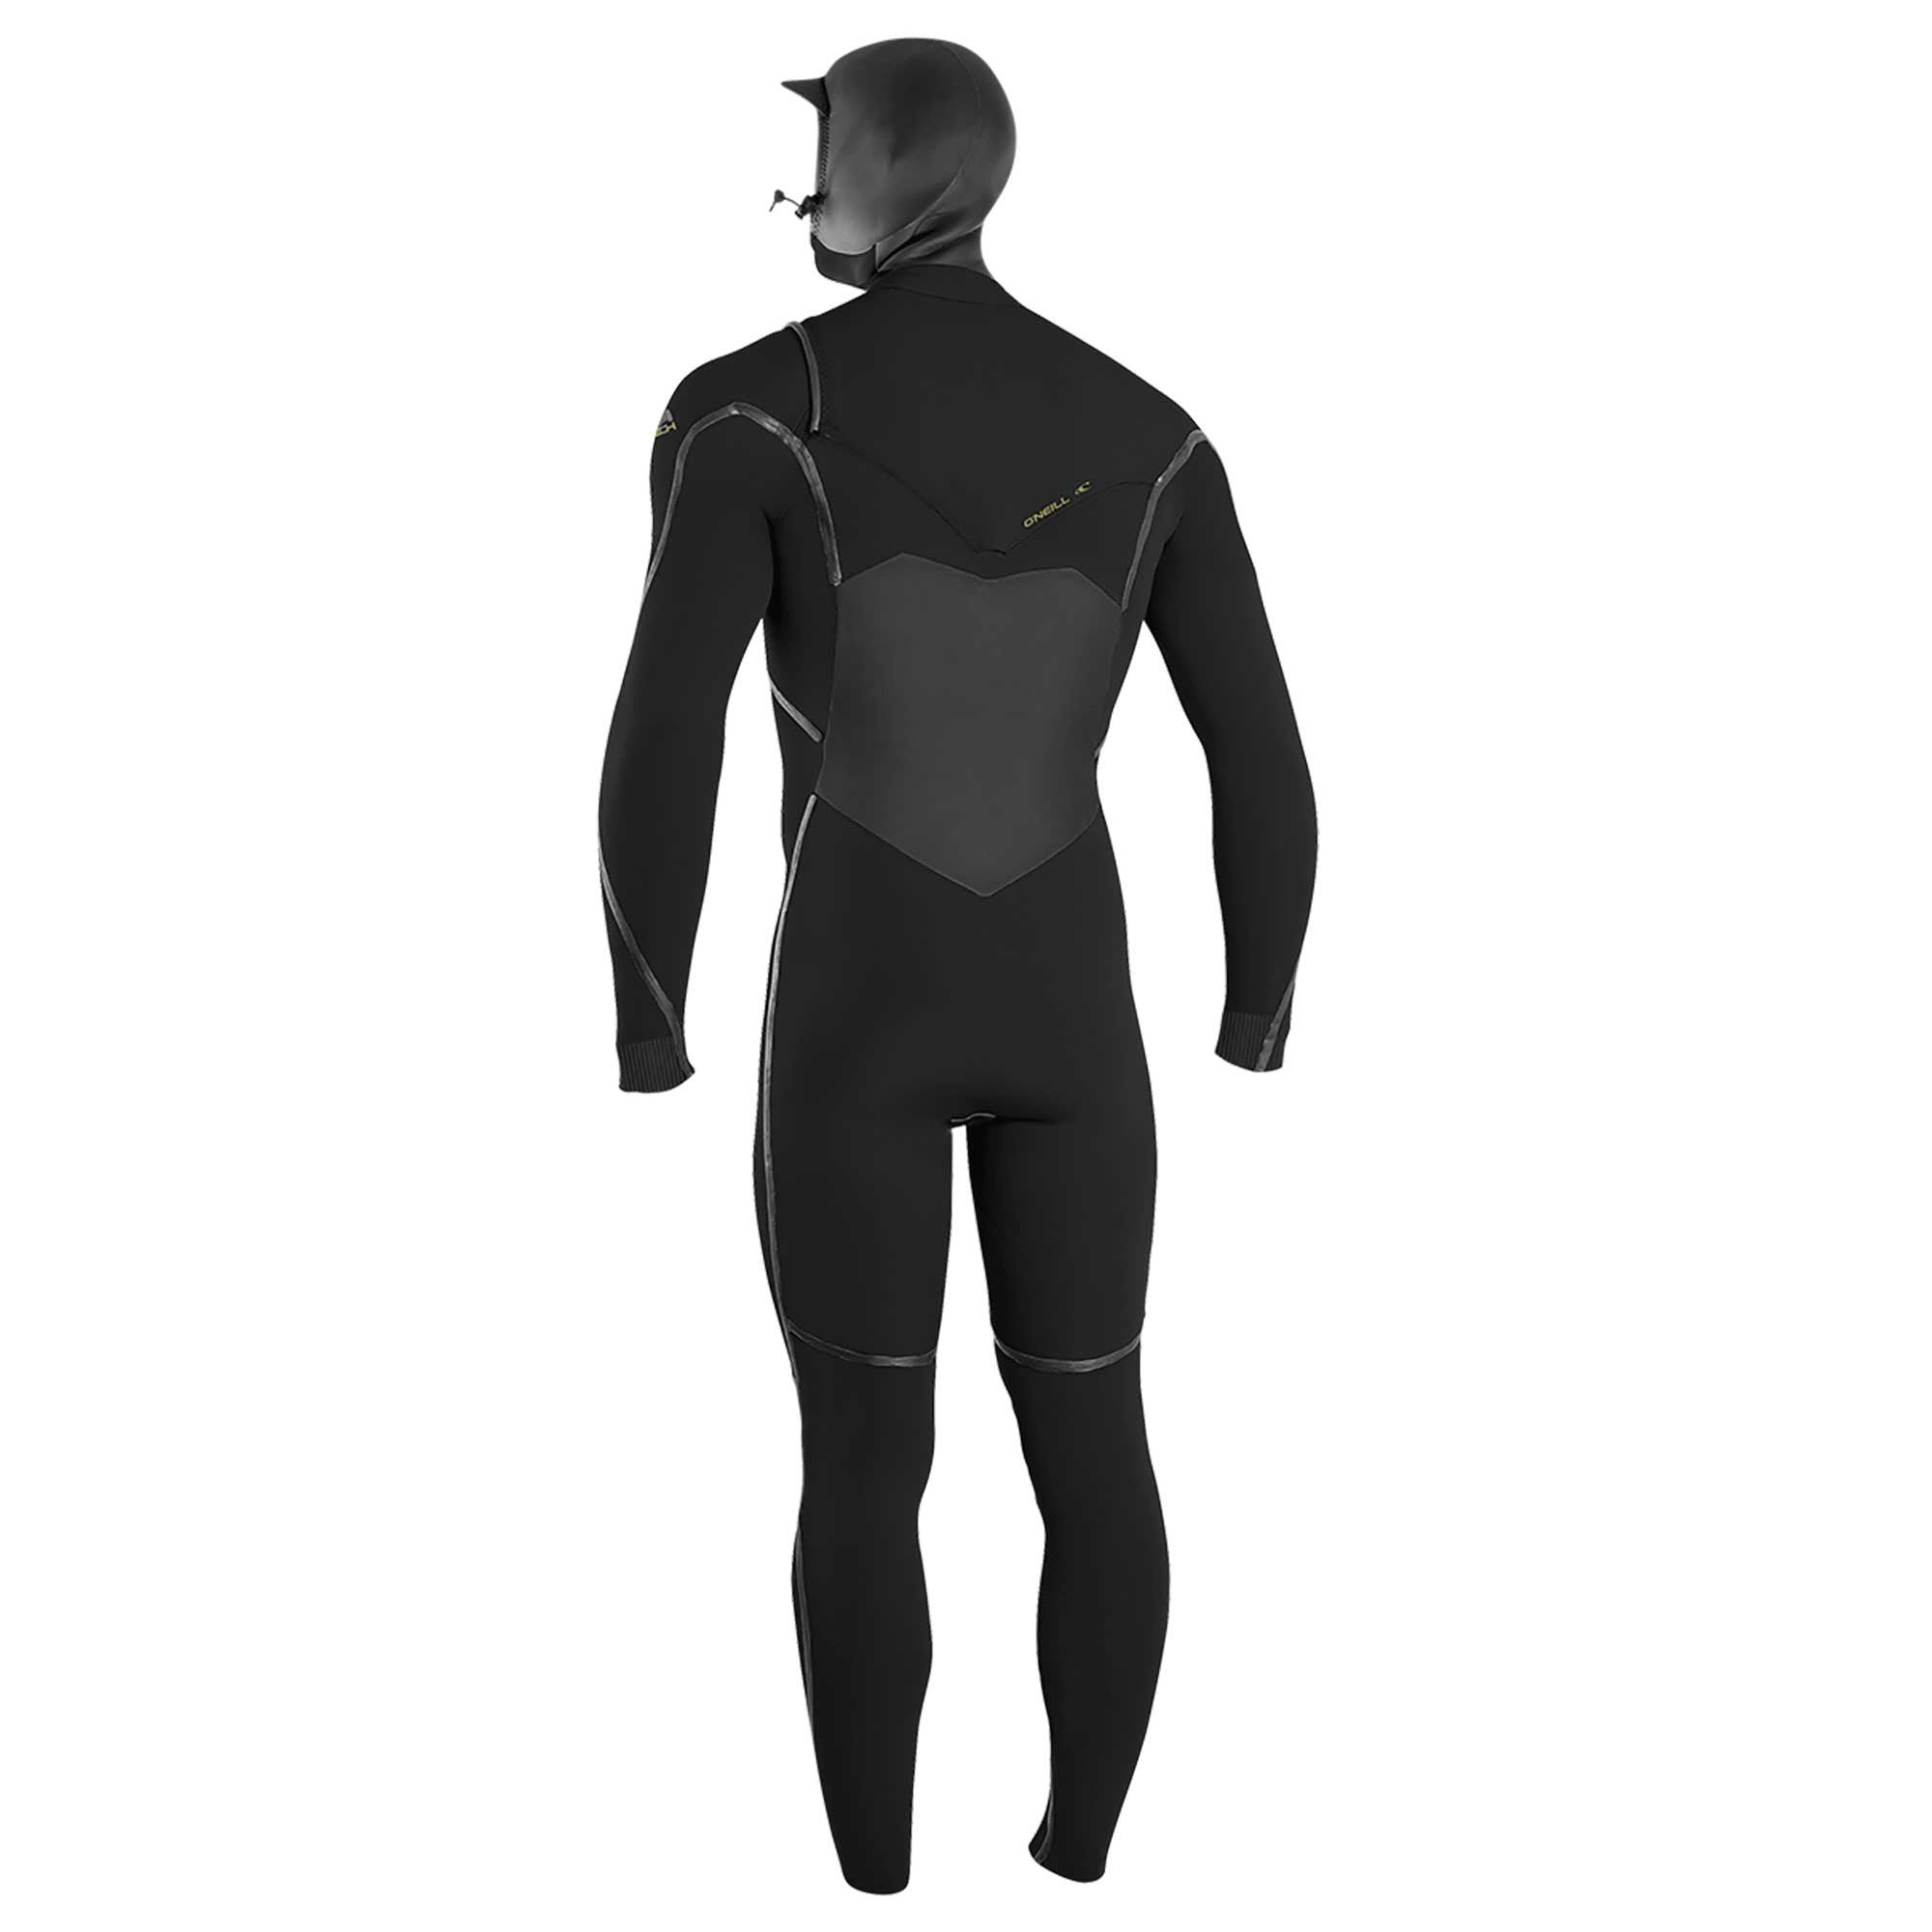 O'Neill Psycho Tech 5.5/4 TB3 Chest Zip Hooded Wetsuit-Big Winds